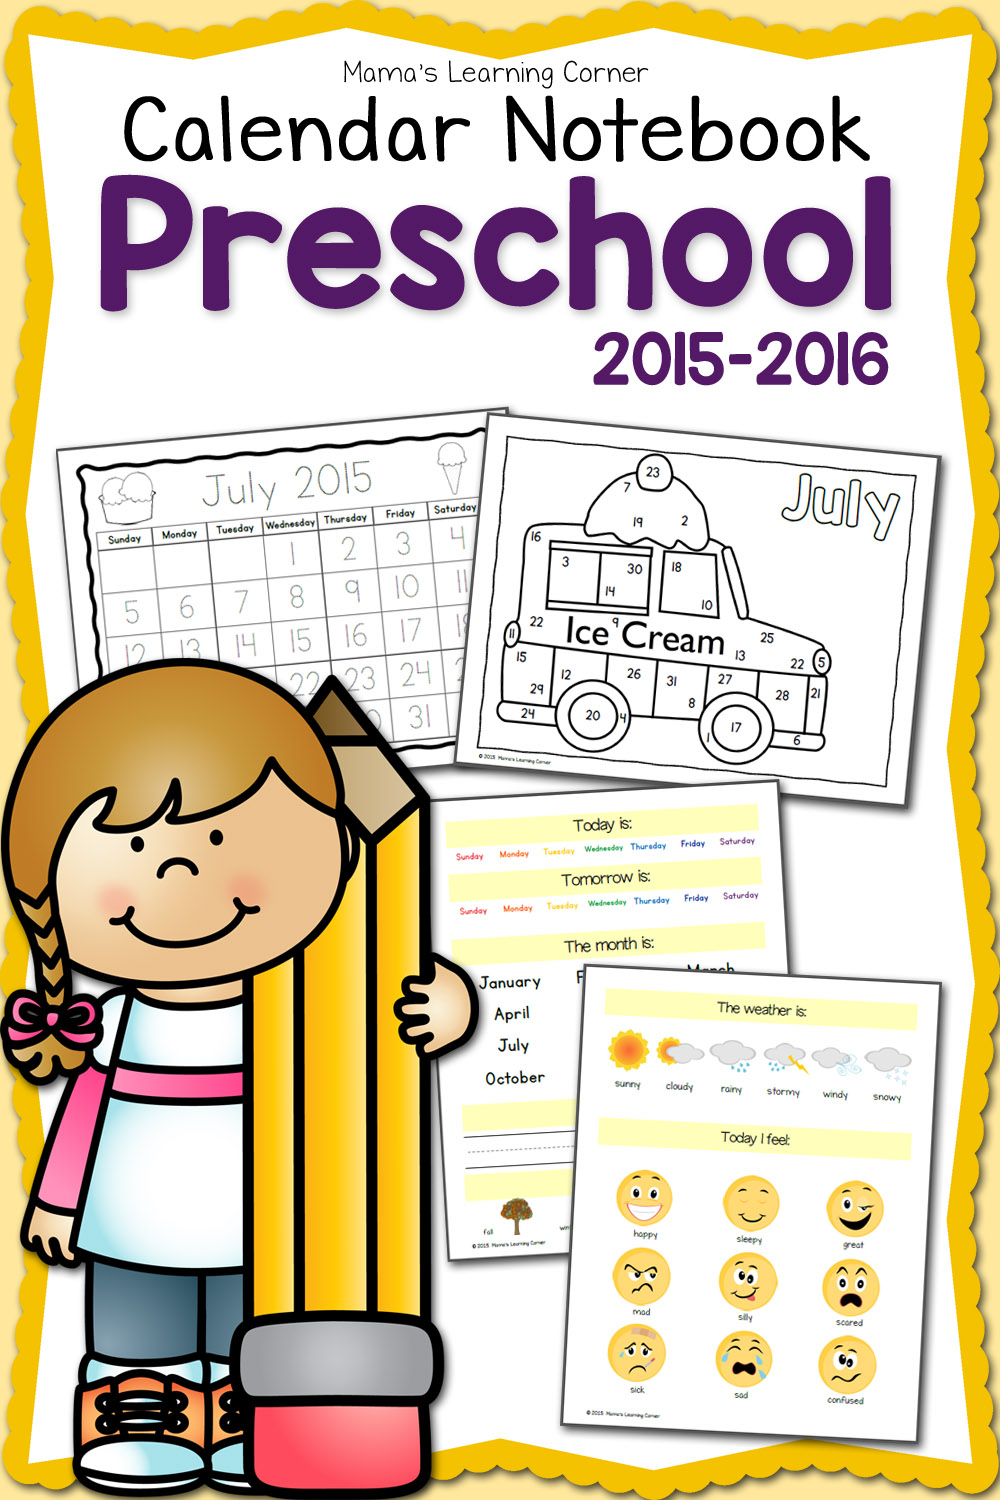 Calendar Printables For Preschool : Free preschool calendar notebook for